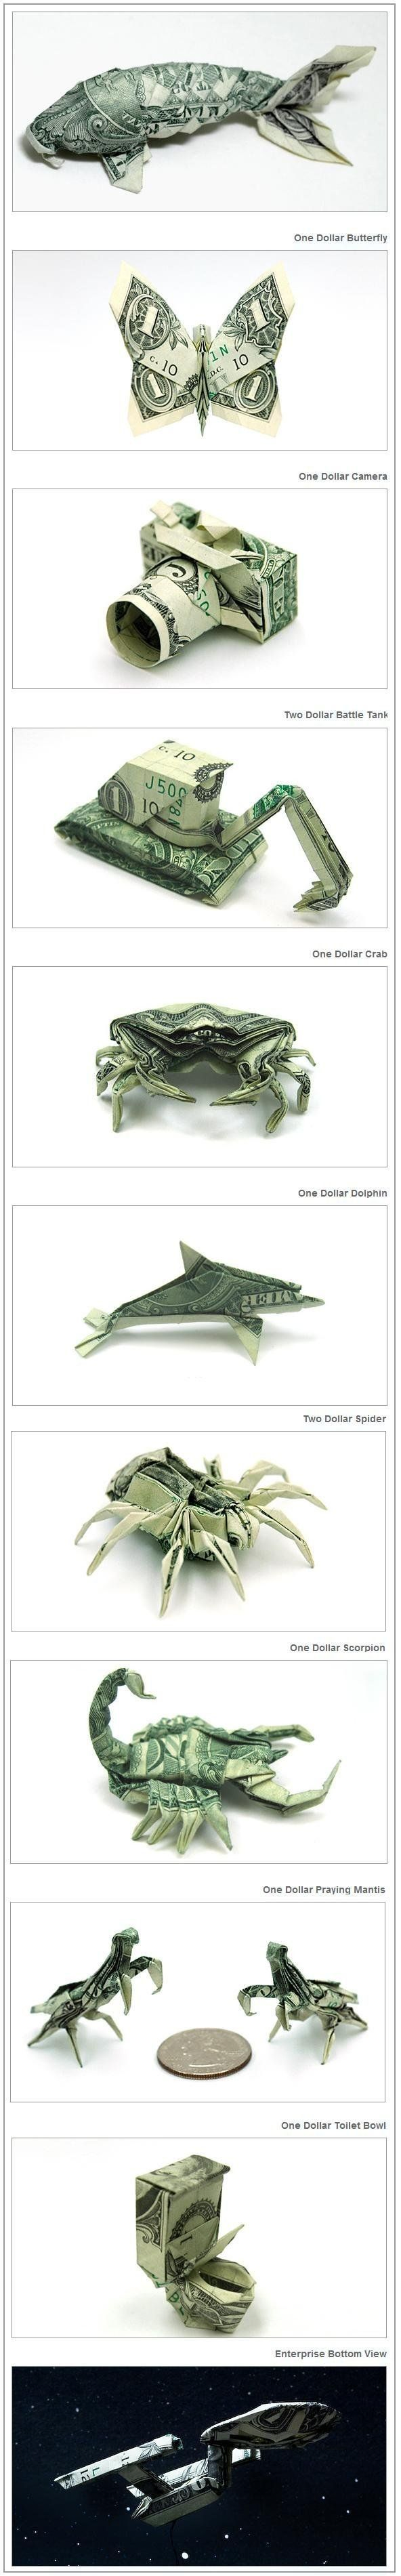 We love us some origami! We could use this and donate the origami (money) to our charitable partners.